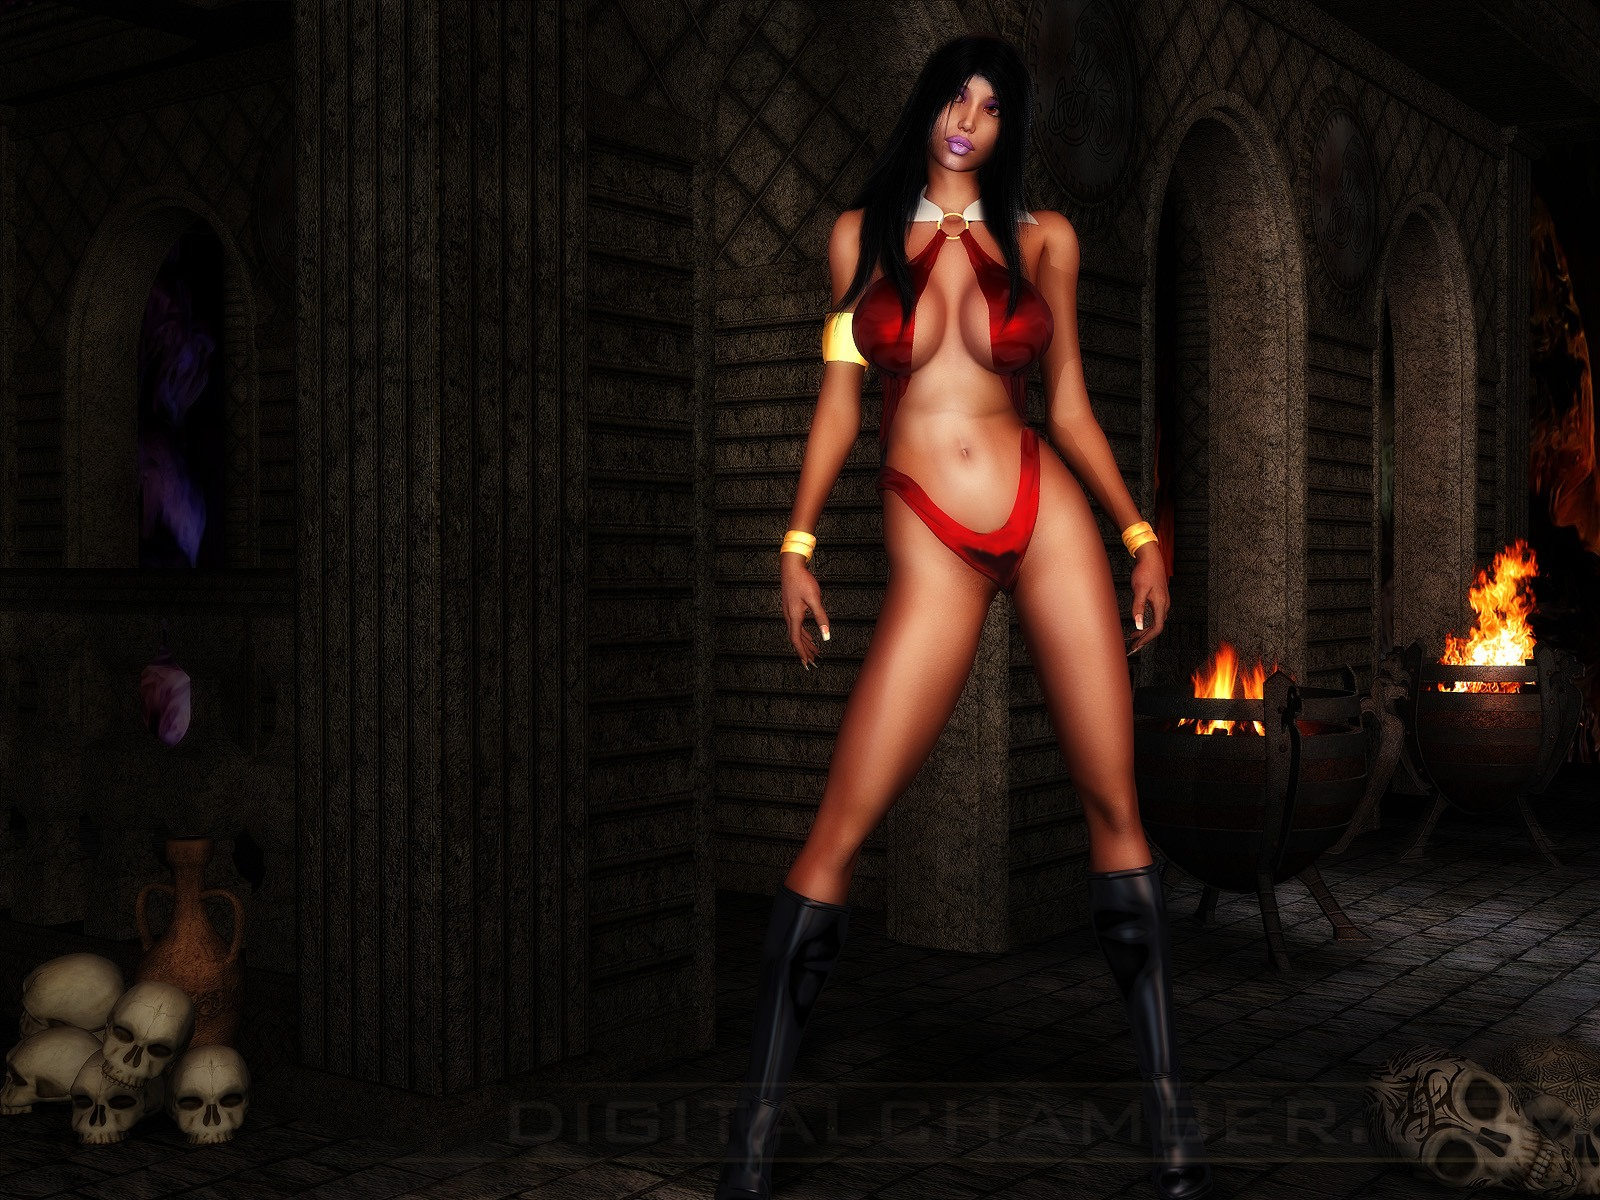 Sexy nude vampire hd wallpaper fucked videos